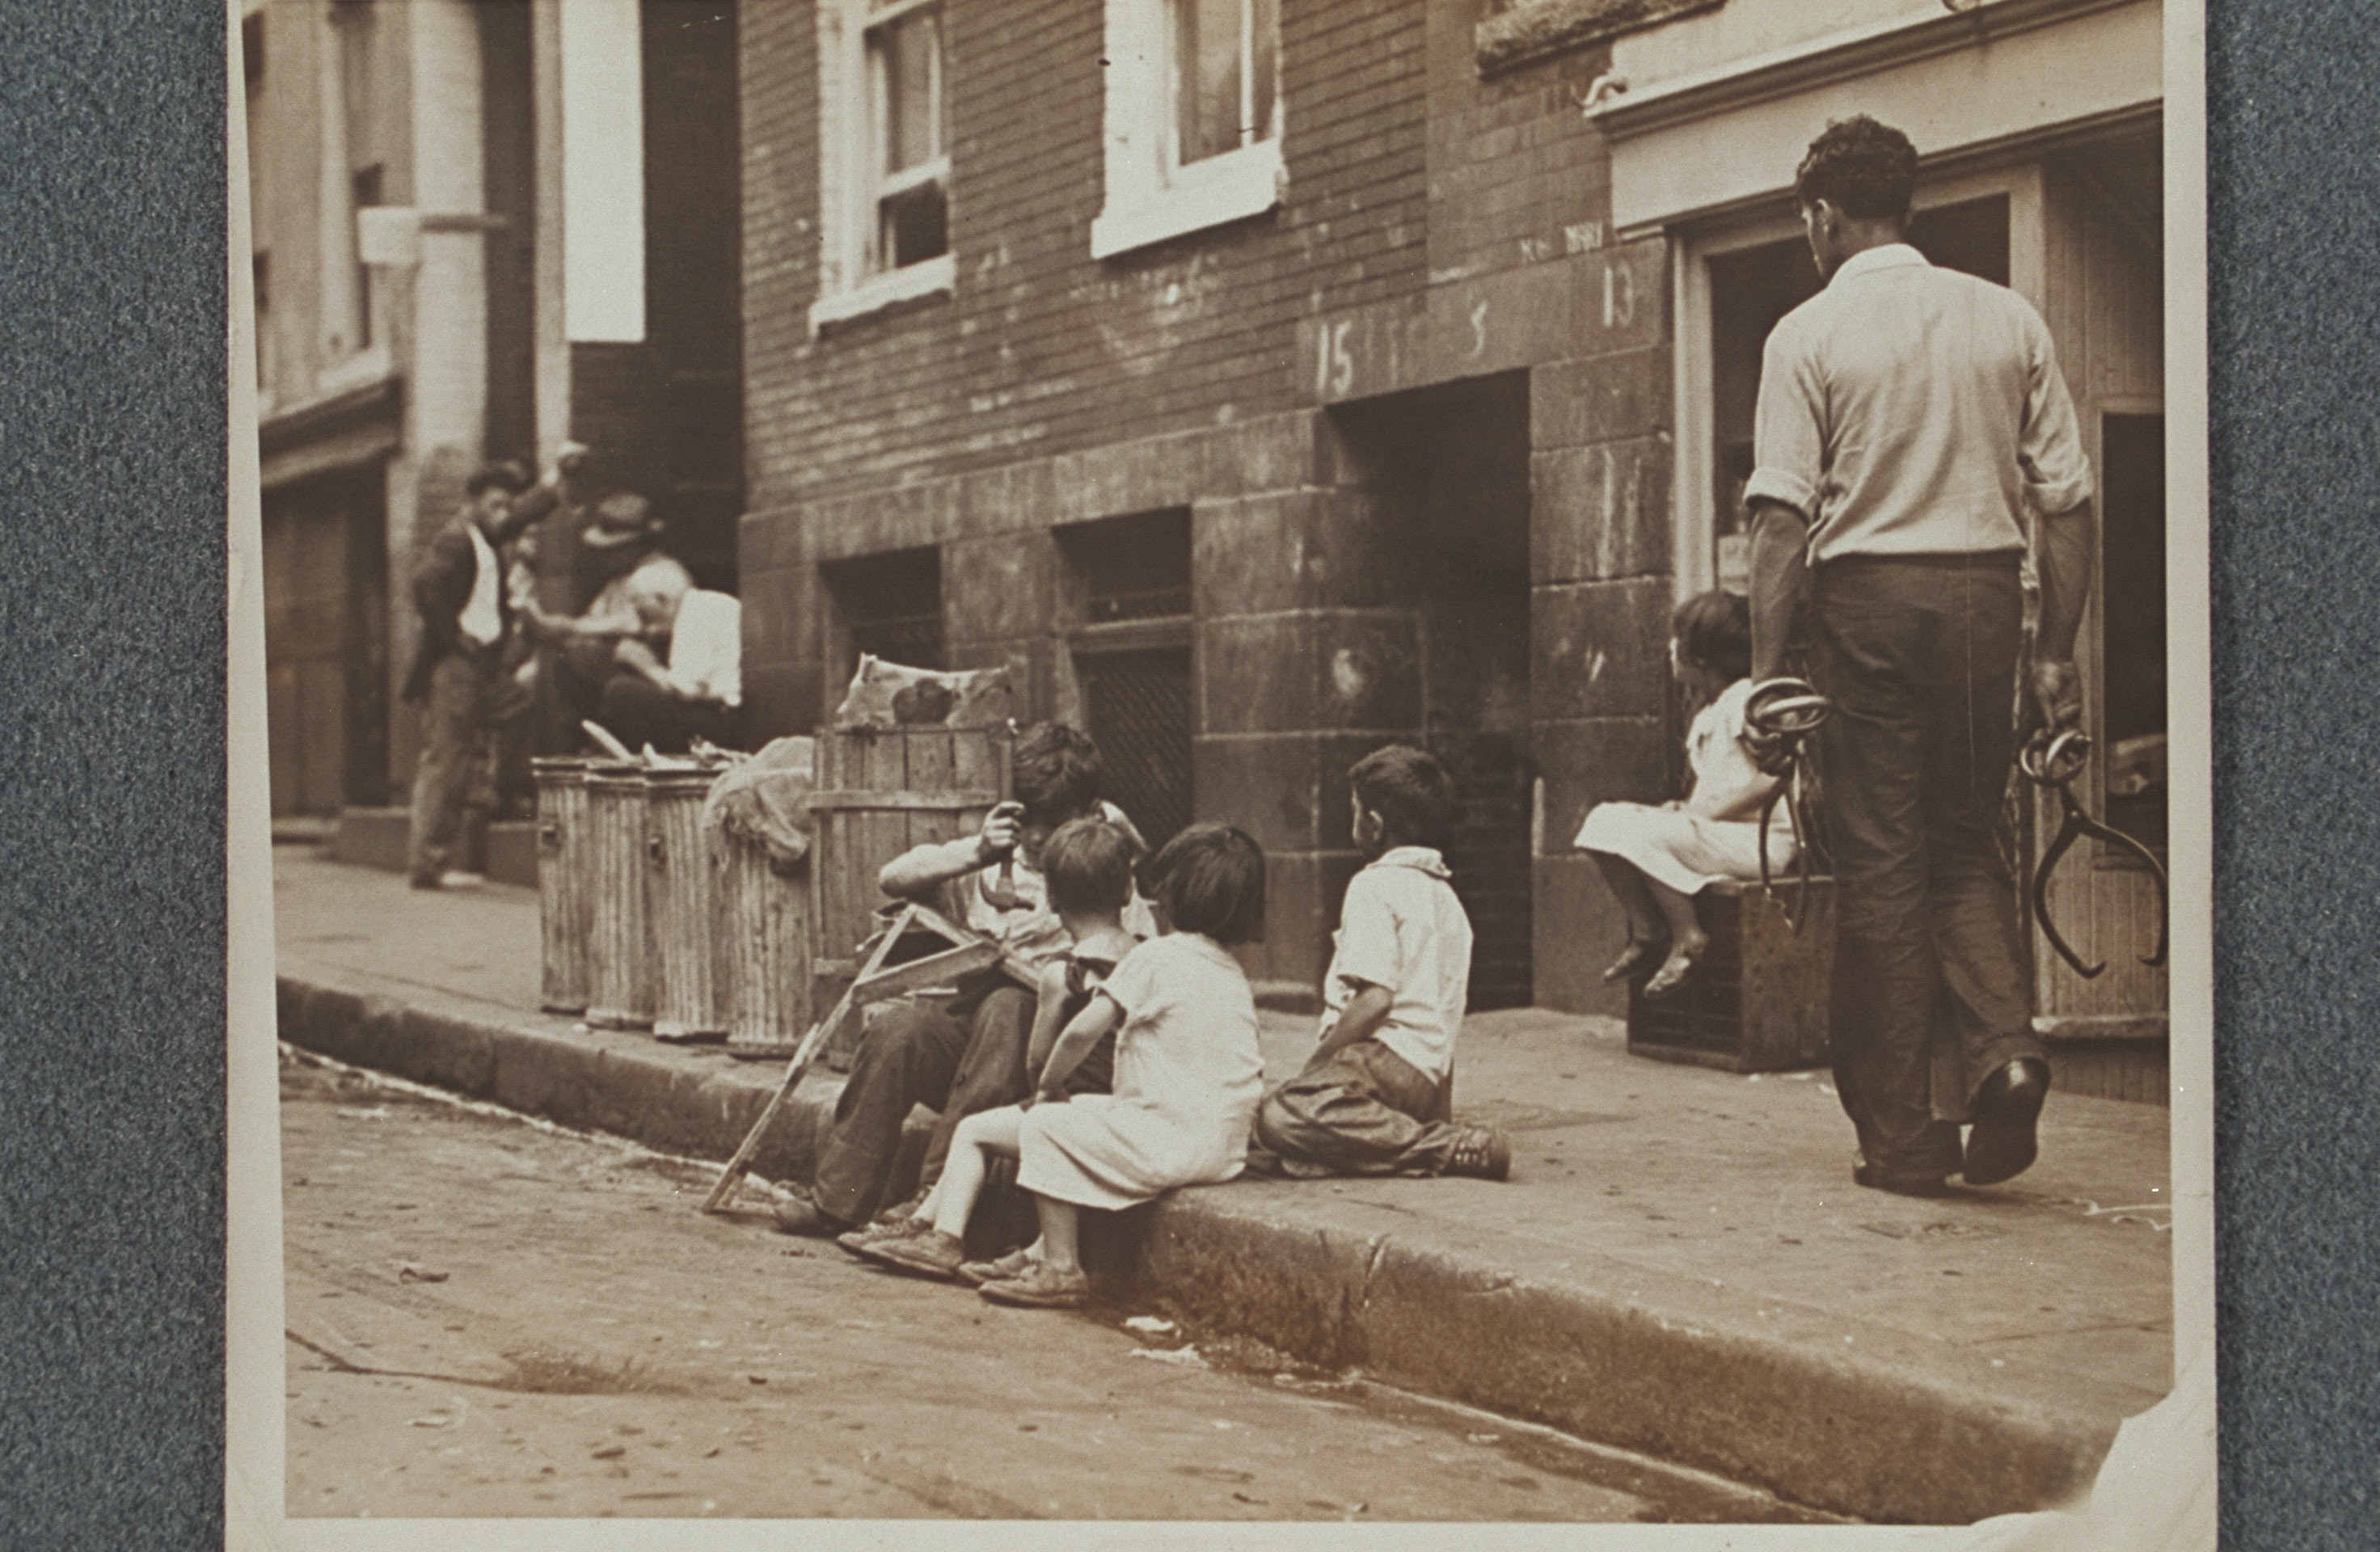 5 children playing on the streets in the North End